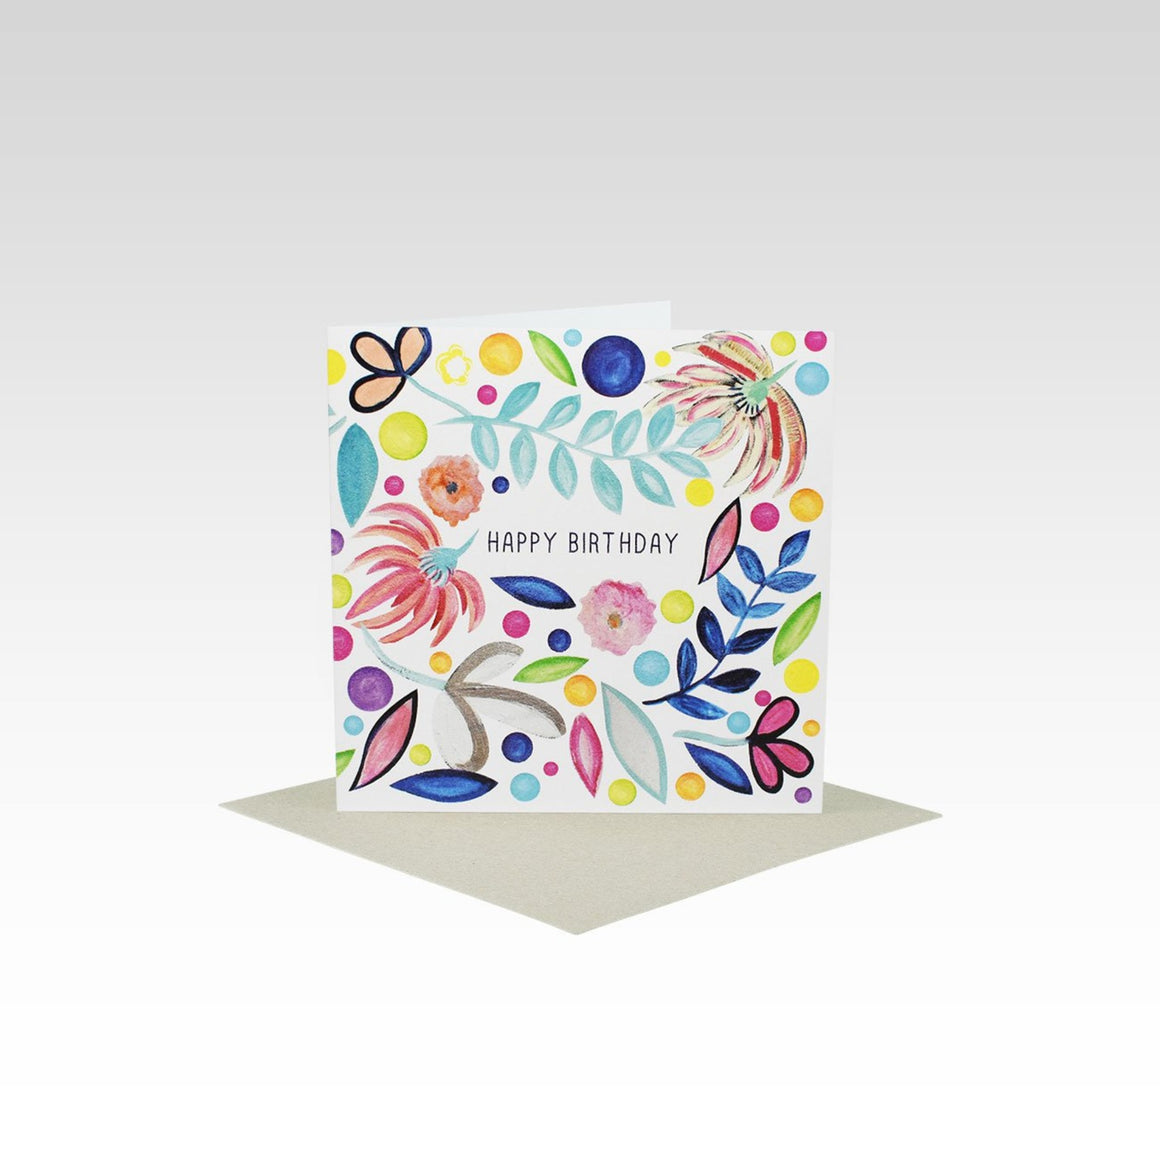 Rhi Creative Greeting Card Mini - Crazy Floral Card